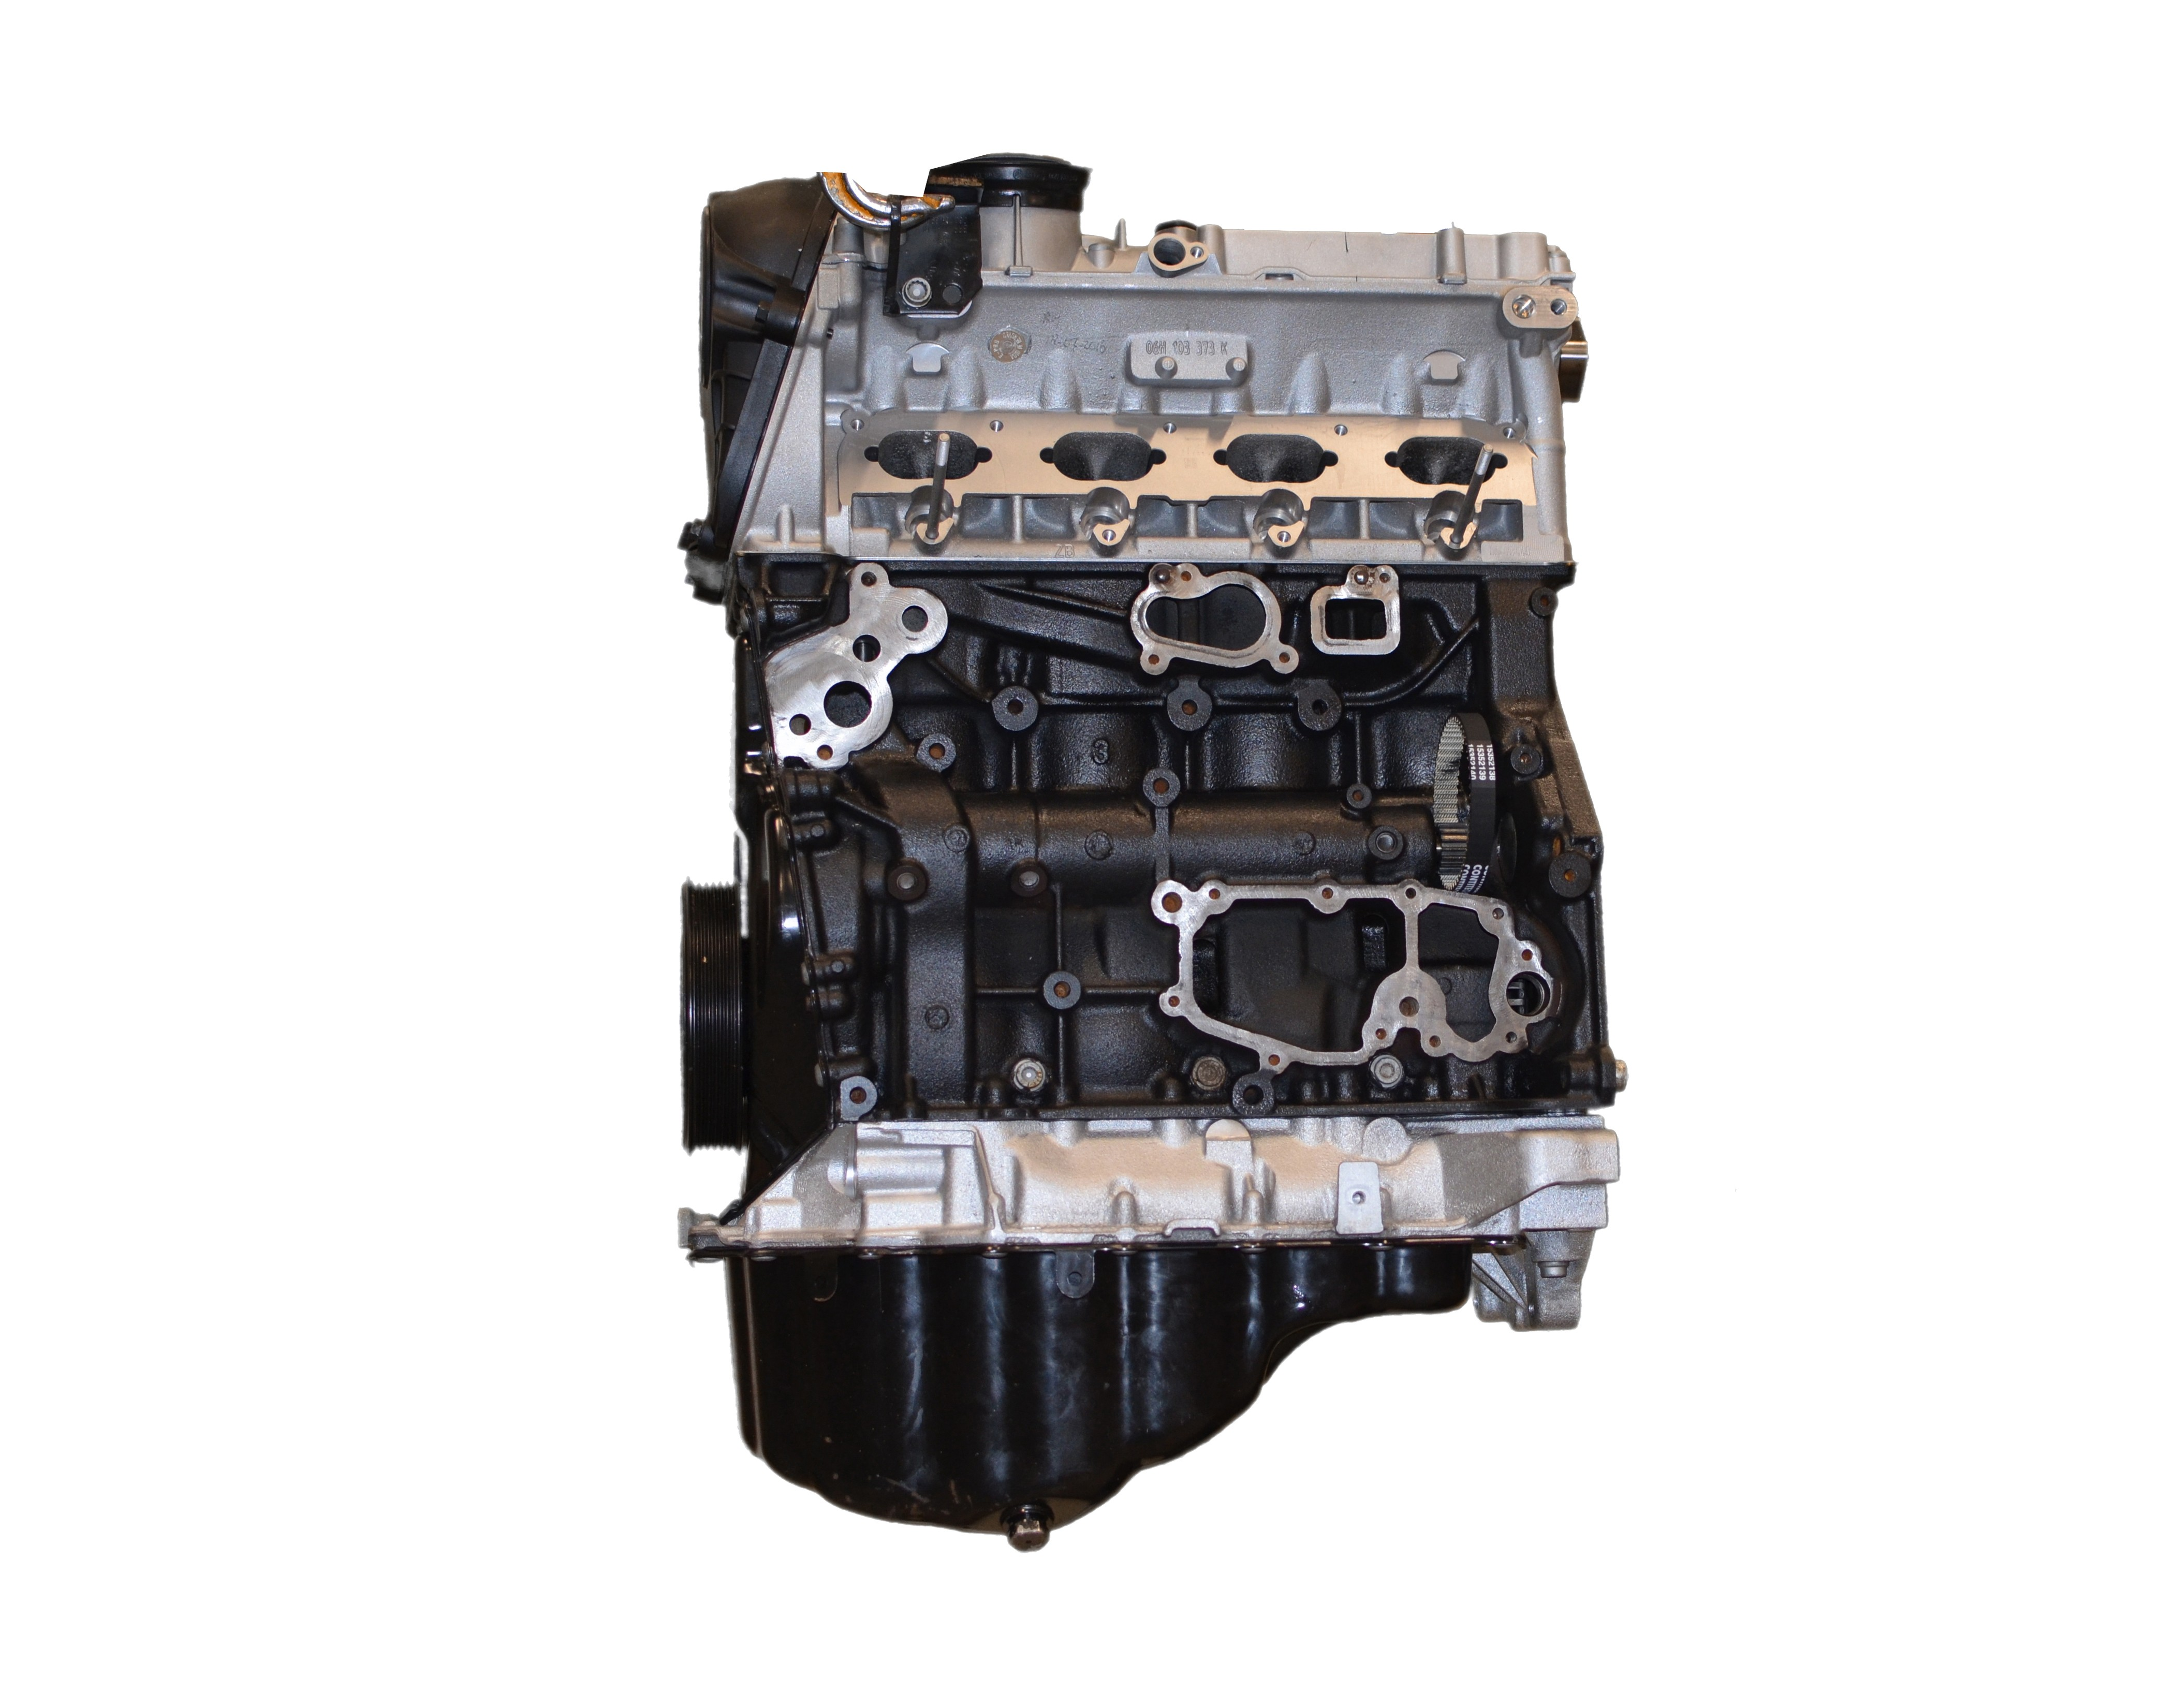 engine inflow land mileage content ford euro engines s tdci inflowcomponent transit rwd remanufactured res landrover cancel complete p low rover global